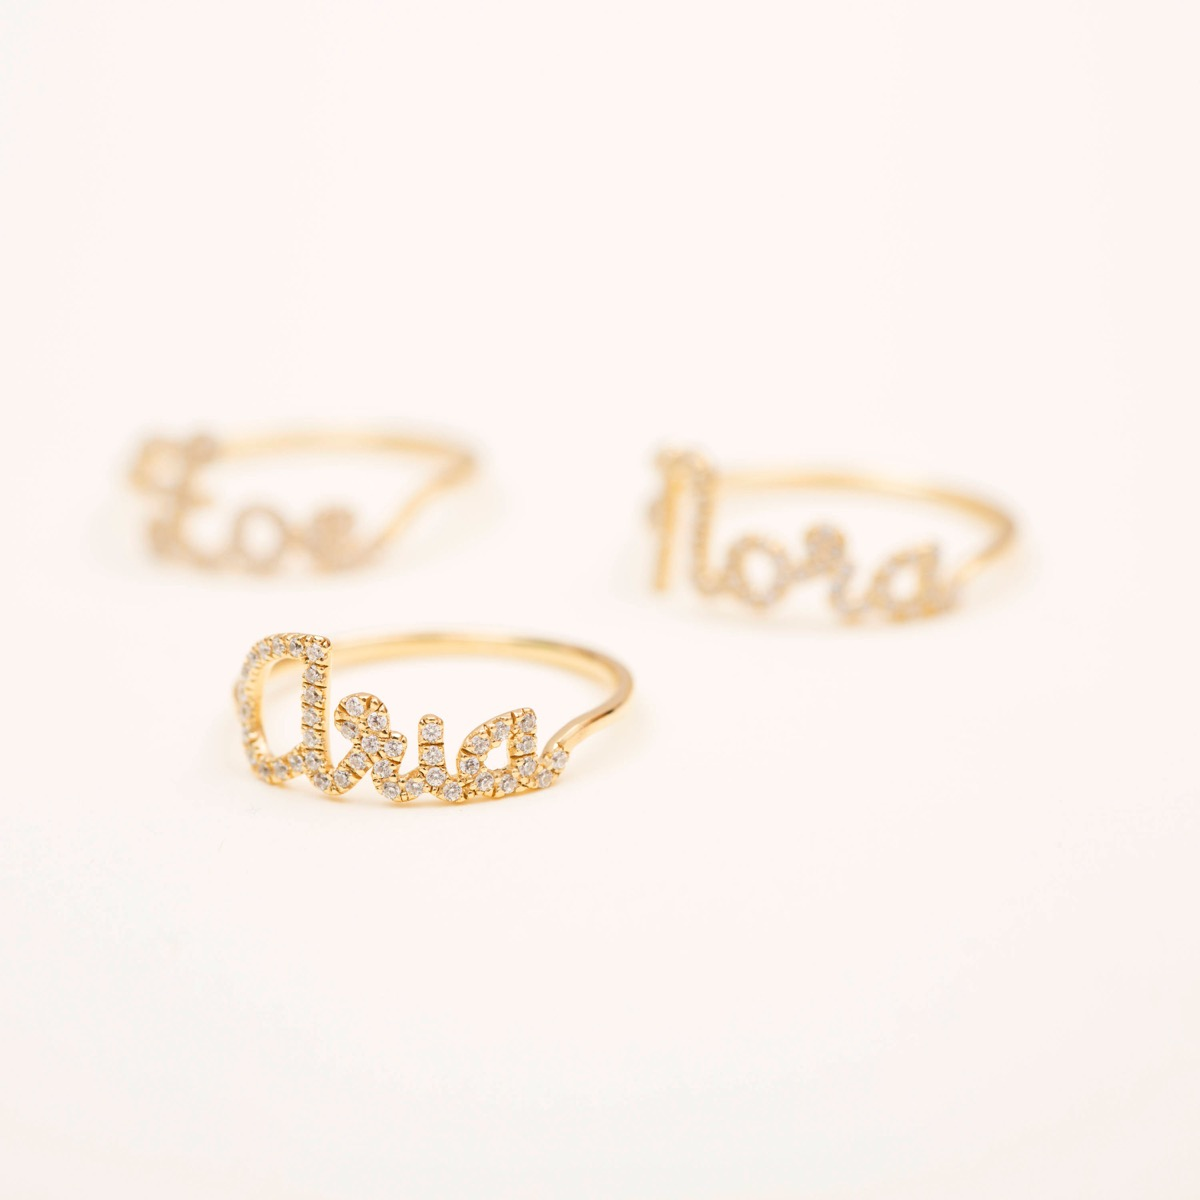 set of three gold name rings with CZ stones